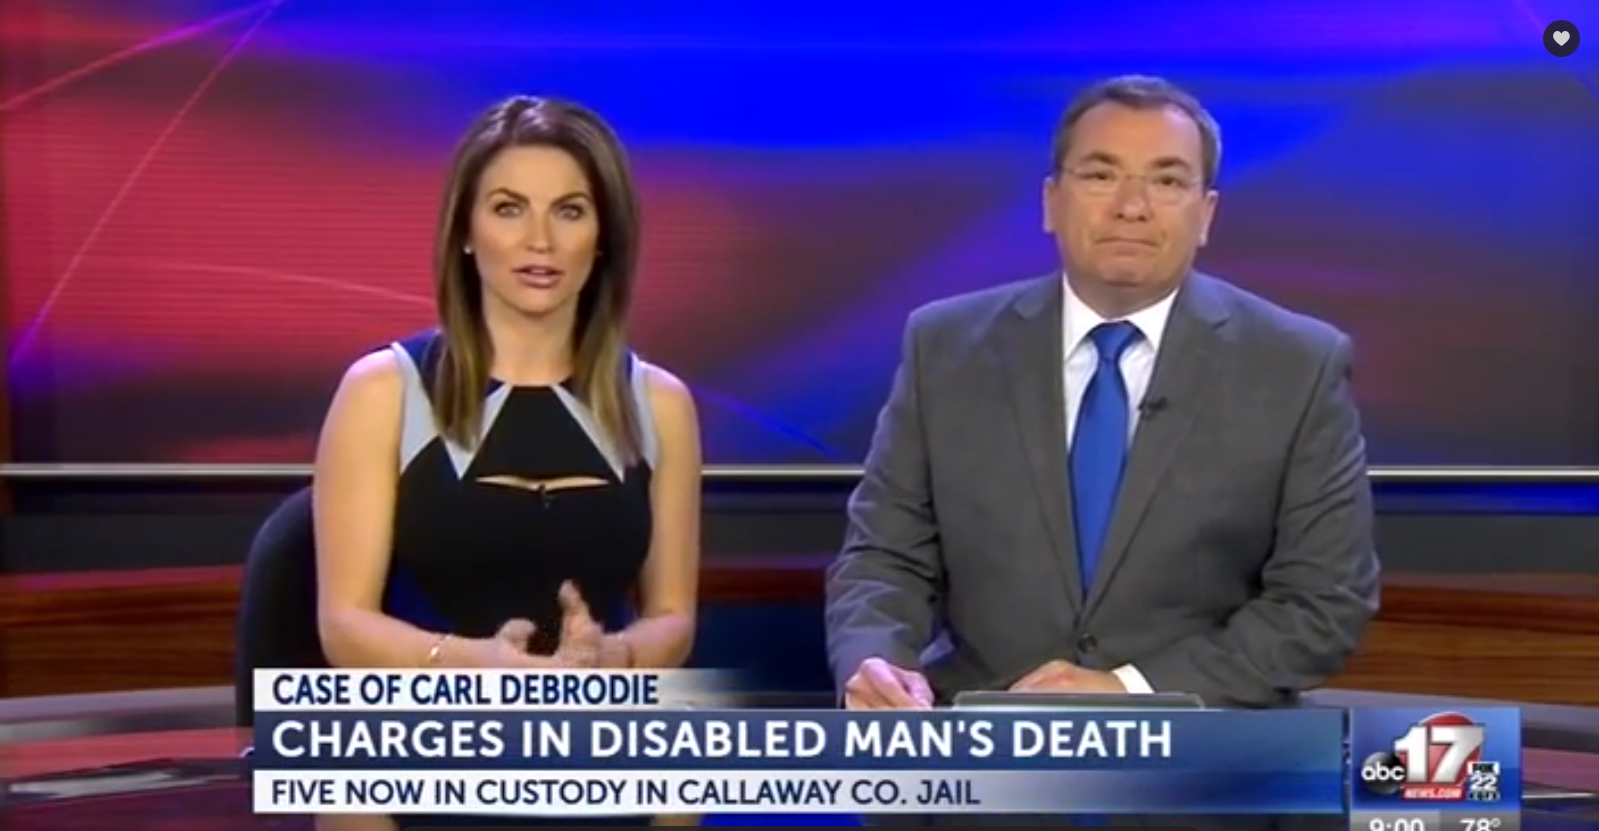 Carl DeBrodie case: Boone Supported Living's CEO says,